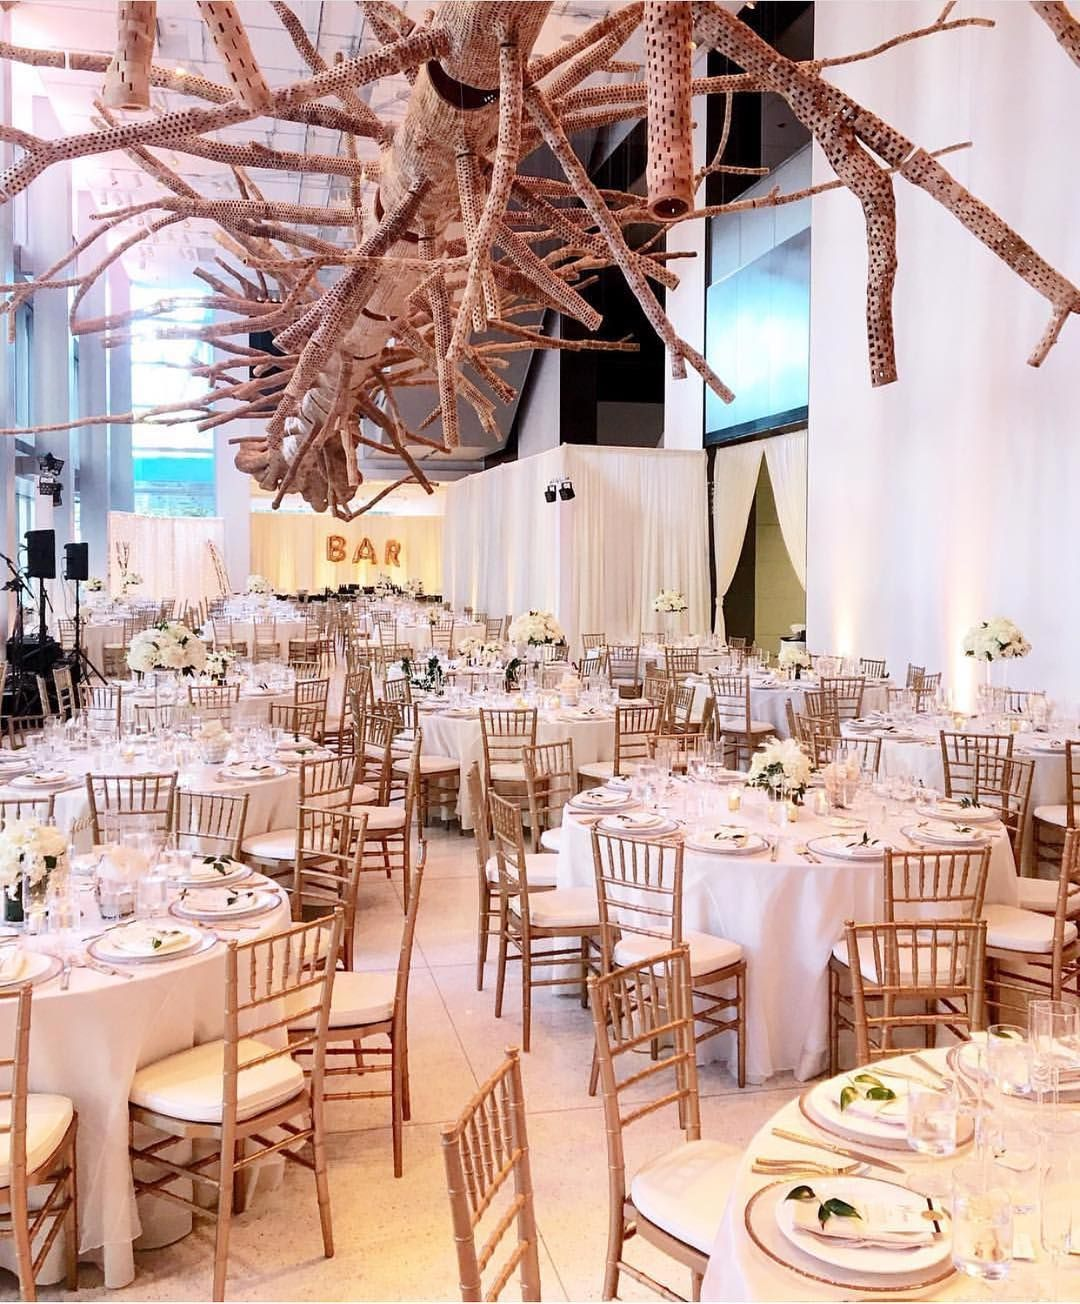 Pedersen S Als Were Used To Create This Wedding Reception At The Seattle Art Museum Weddings Gold Events Eventals Love Venue